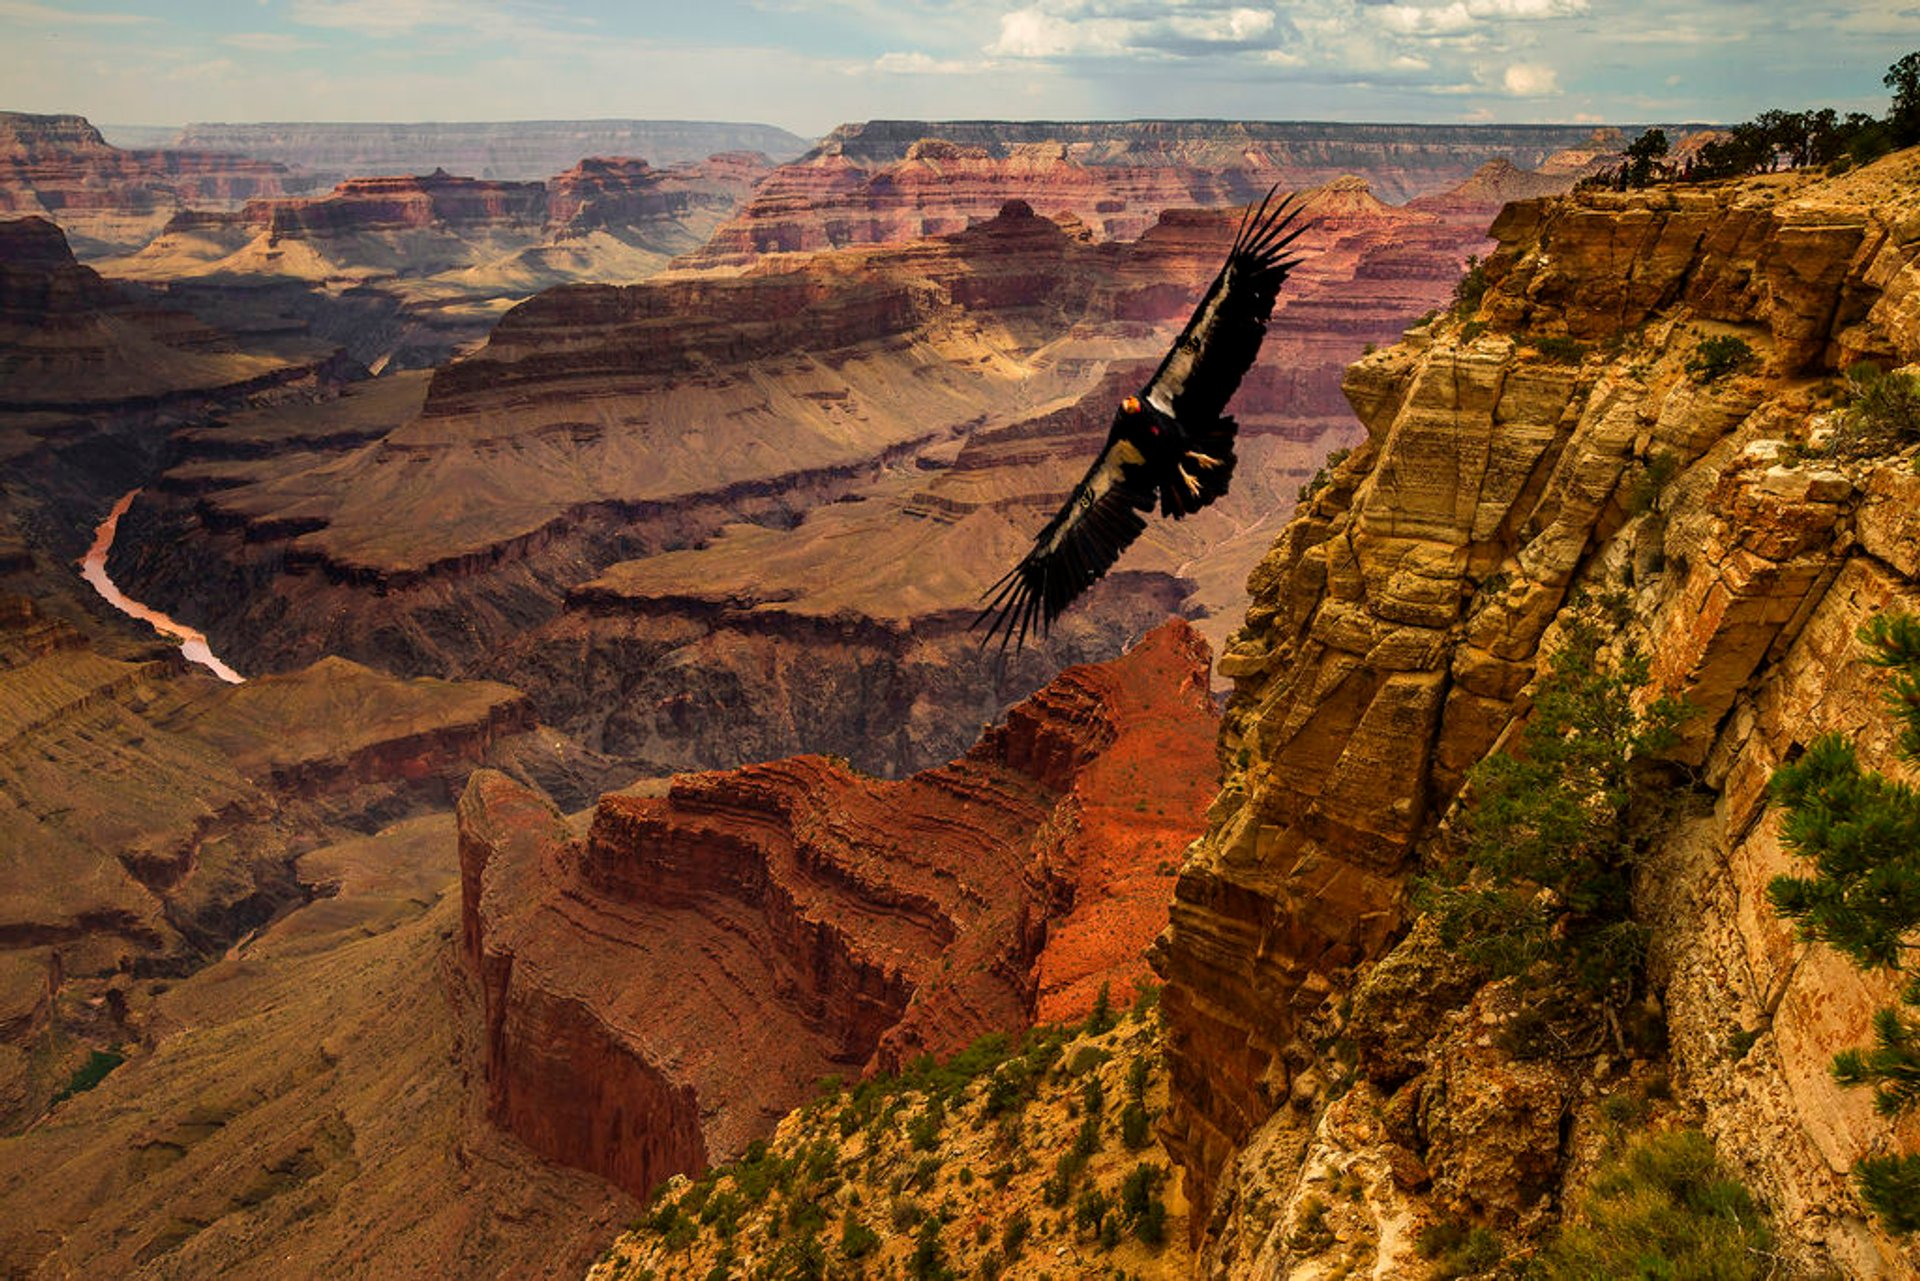 California Condor in Grand Canyon 2019 - Best Time